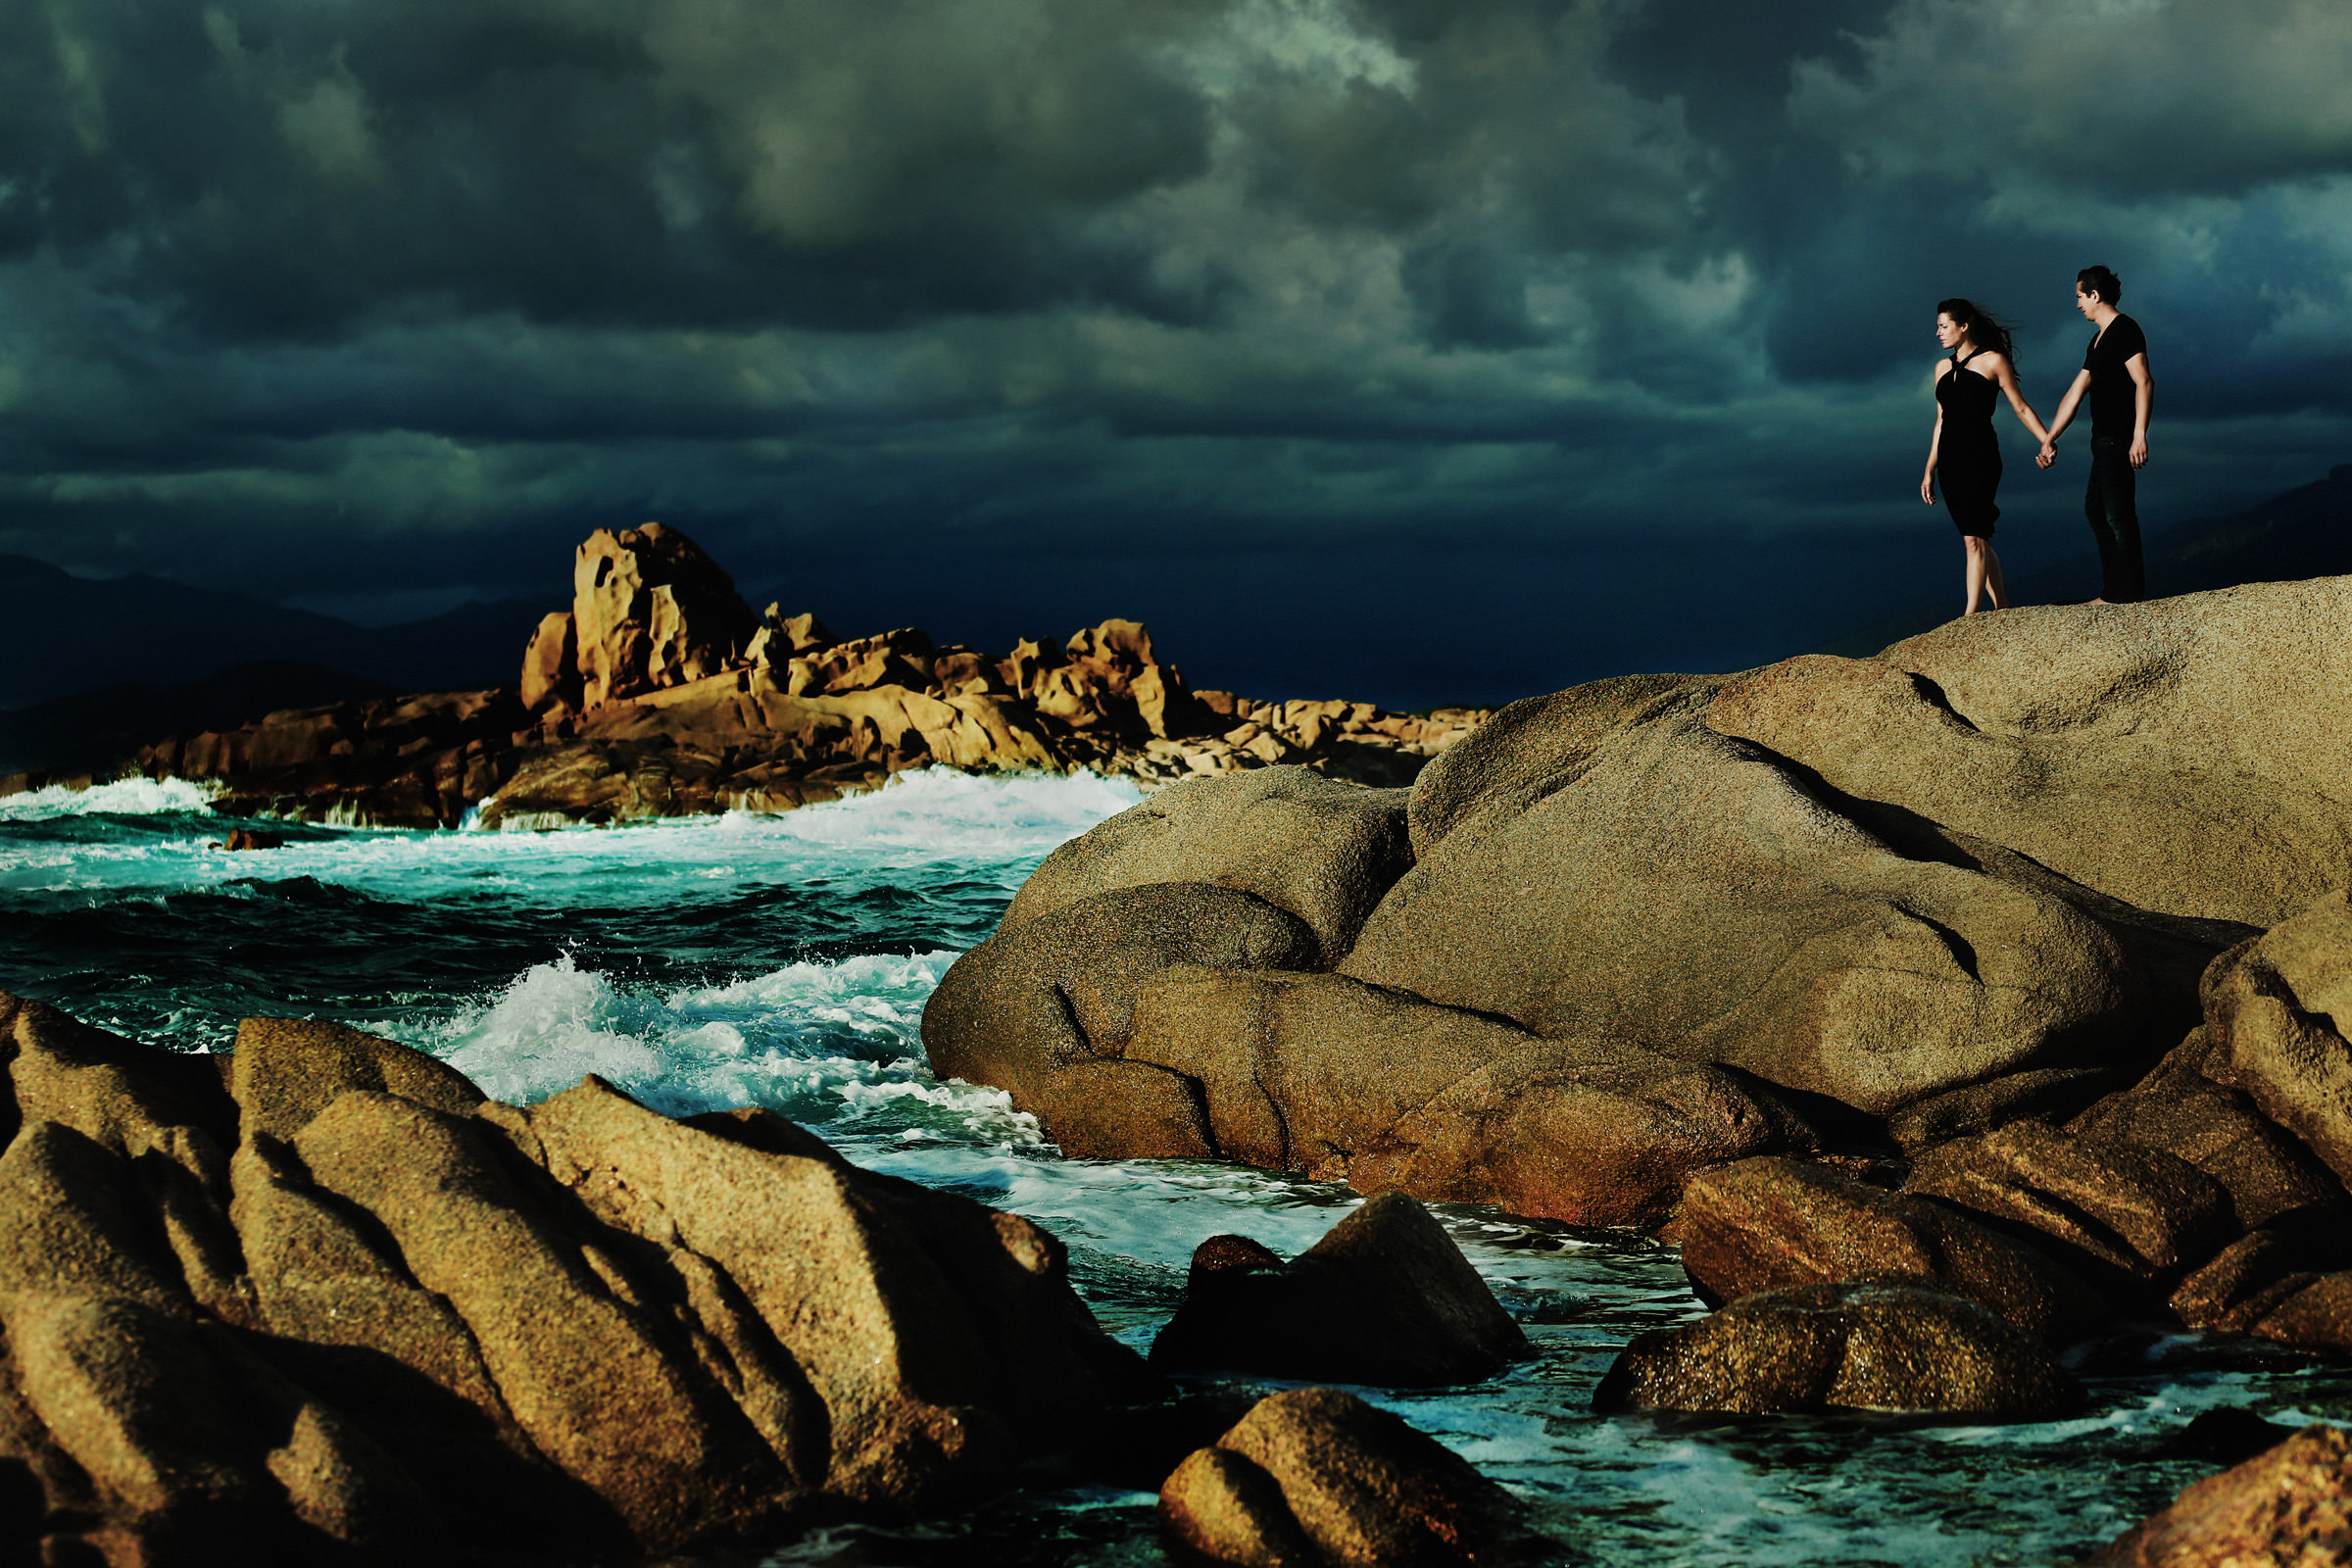 Engagement portrait on rocks by the ocean, by Franck Boutonnet